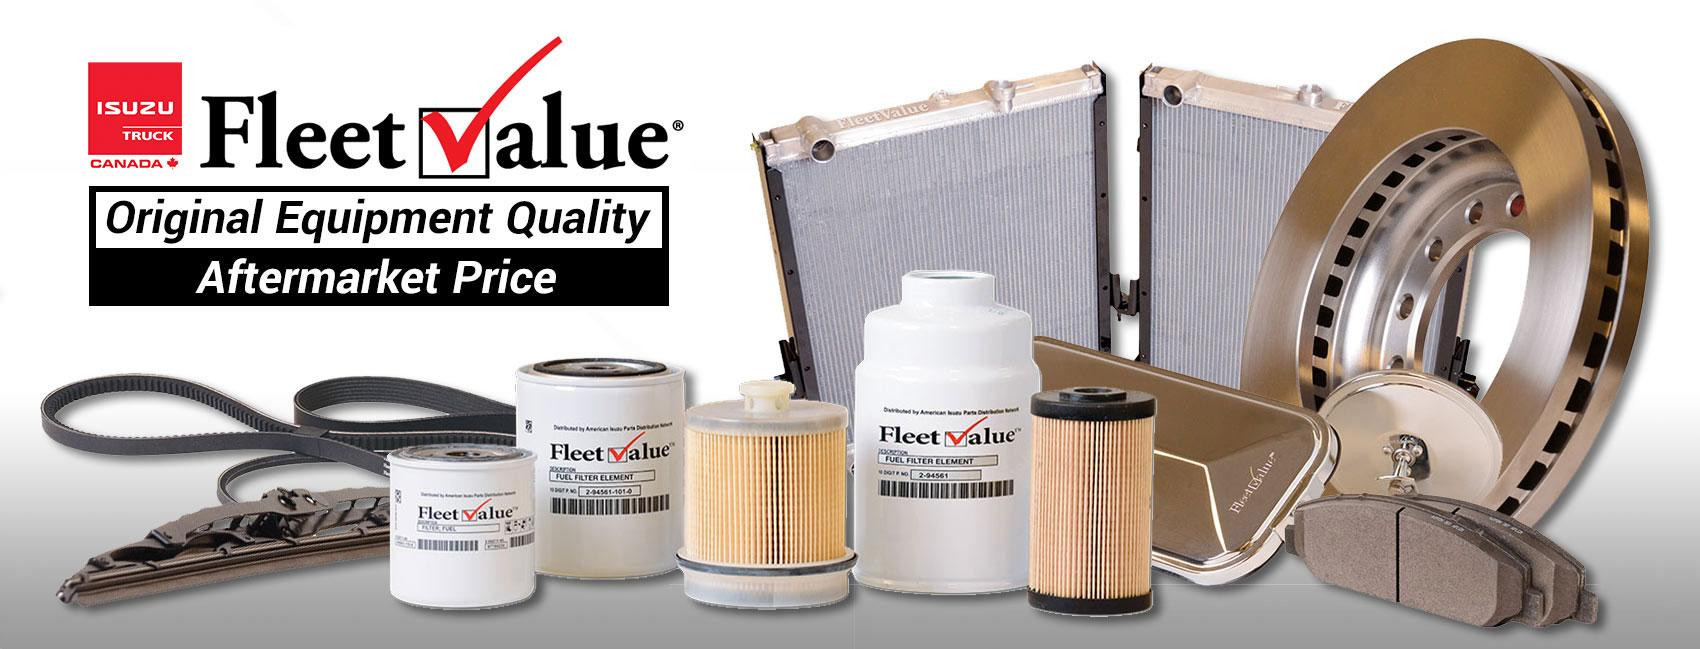 Isuzu FleetValue Truck Parts